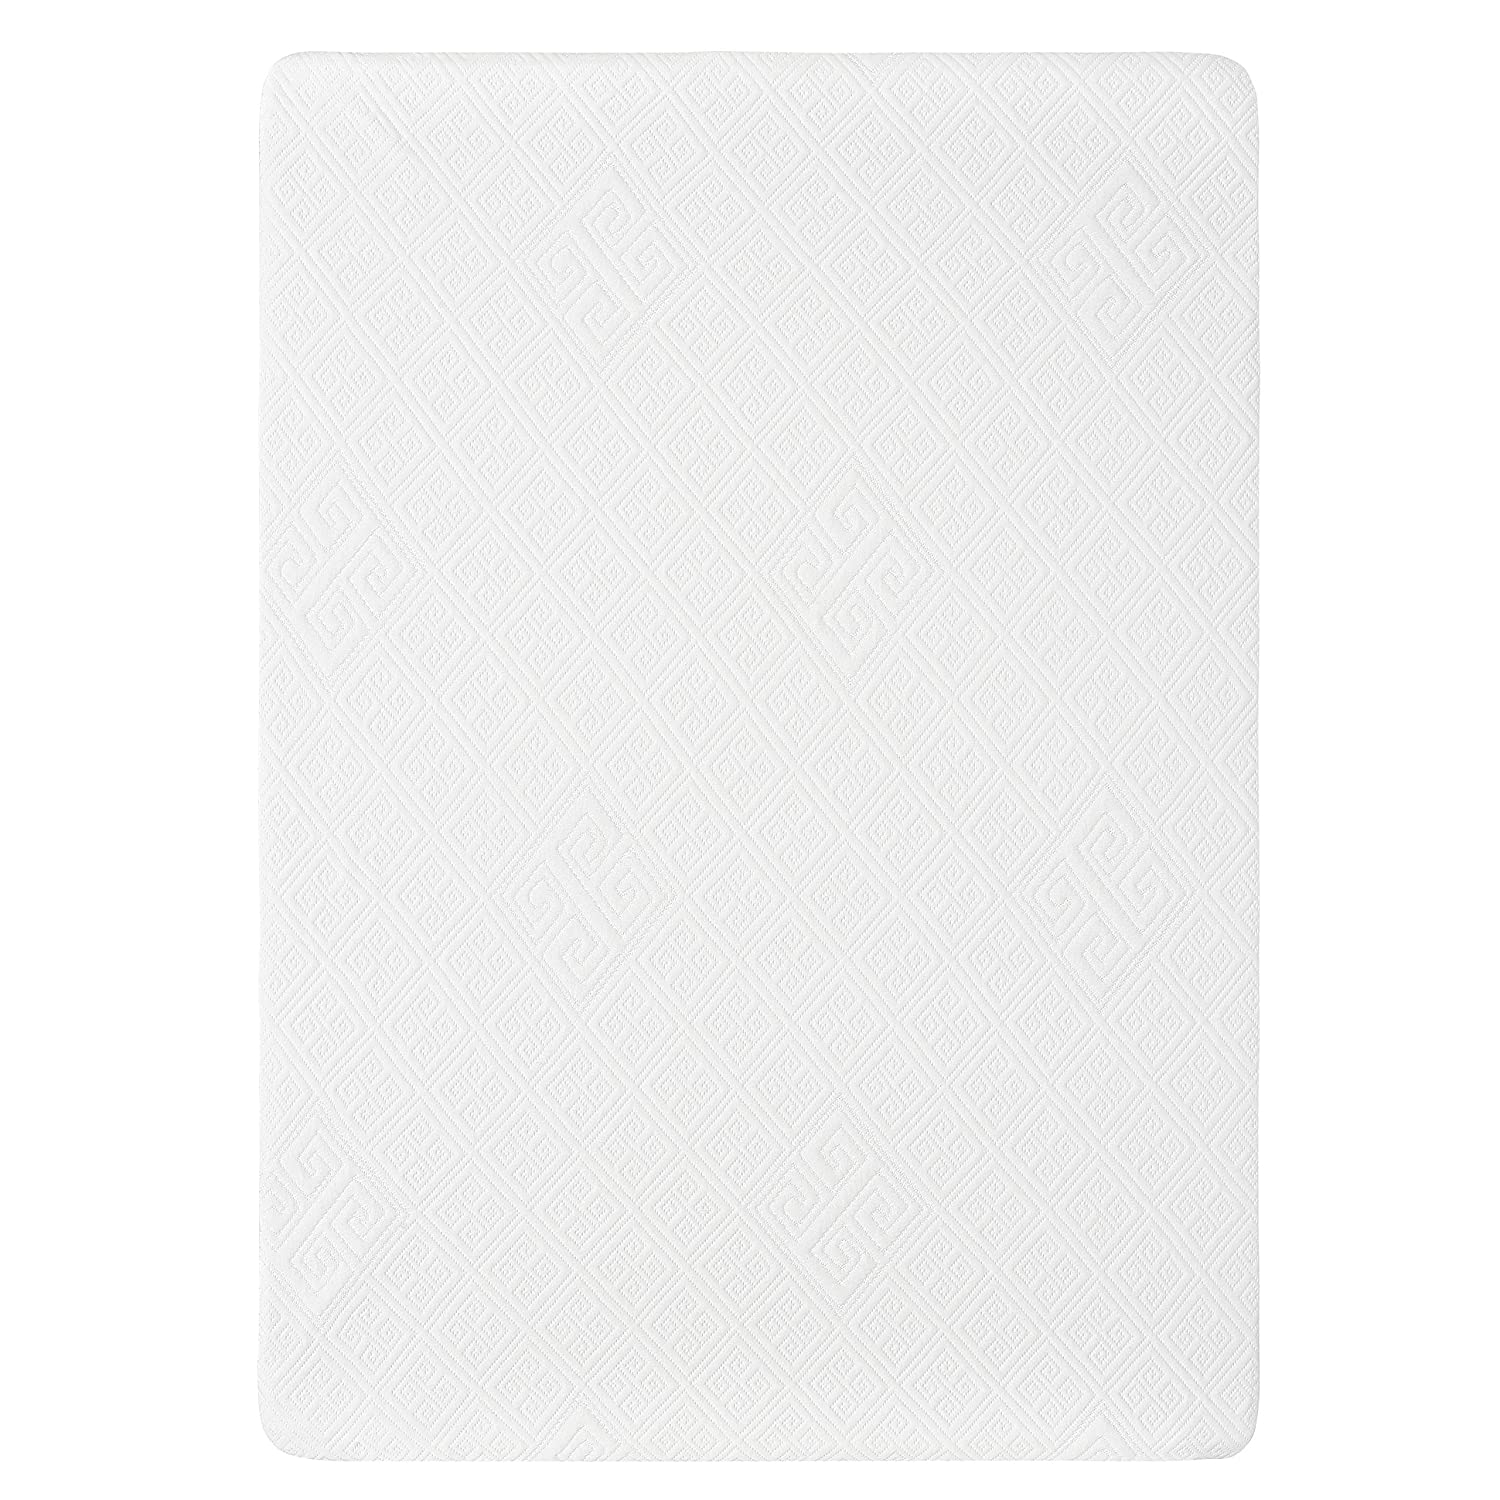 Amazon.com : Evolur Portable Crib Tencel Waterproof Mattress Protector and Fitted Sheet, White (2 Pack) : Baby